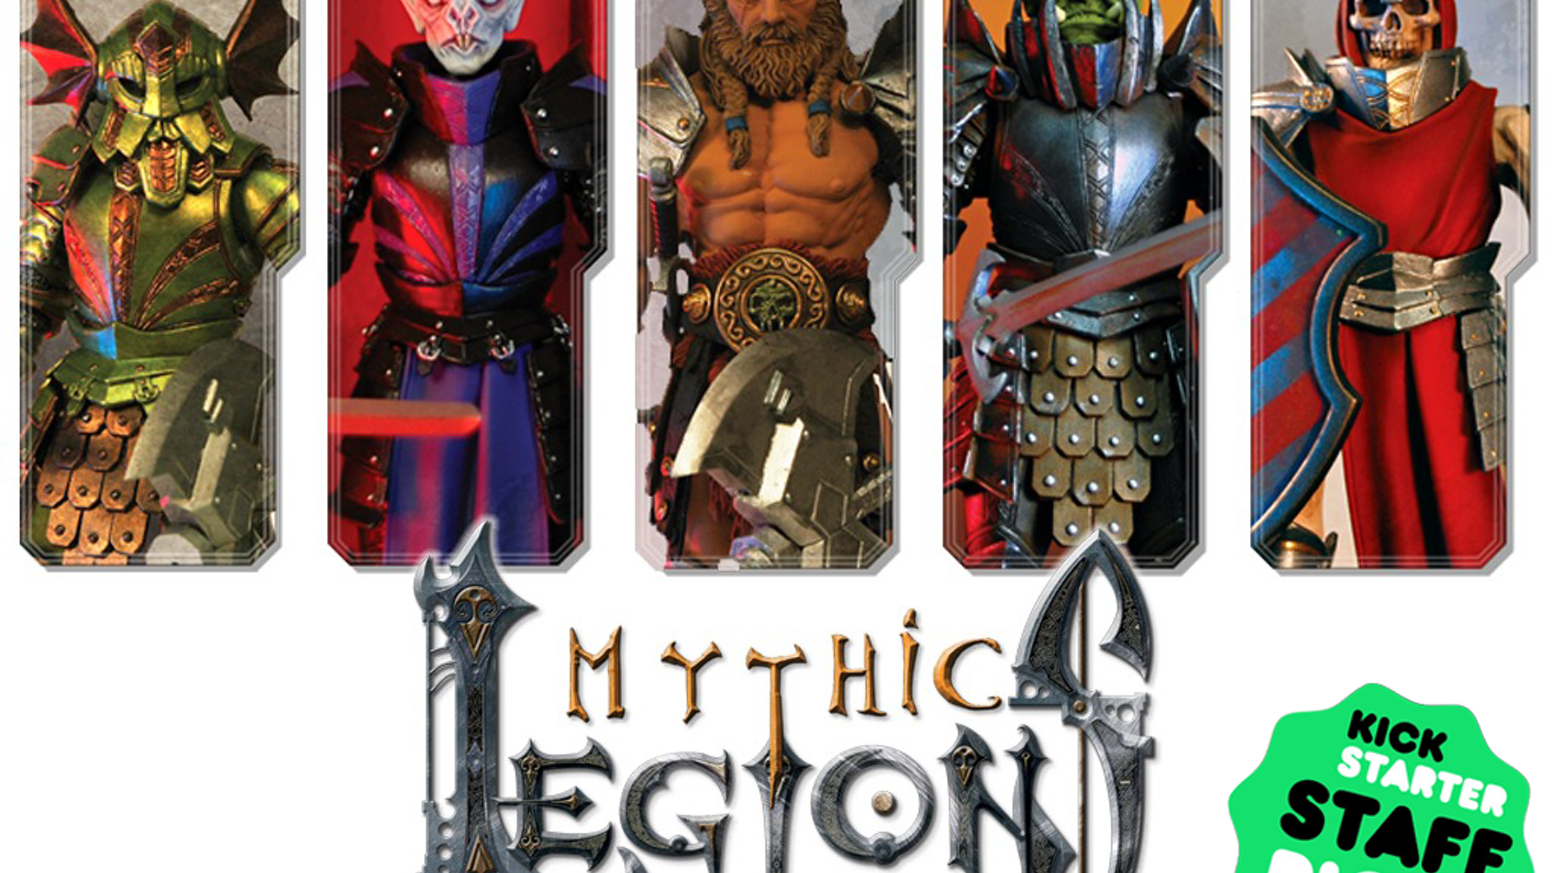 "Mythic Legions is a line of beautifully detailed and fully articulated 6"" scale fantasy action figures by Four Horsemen Studios"